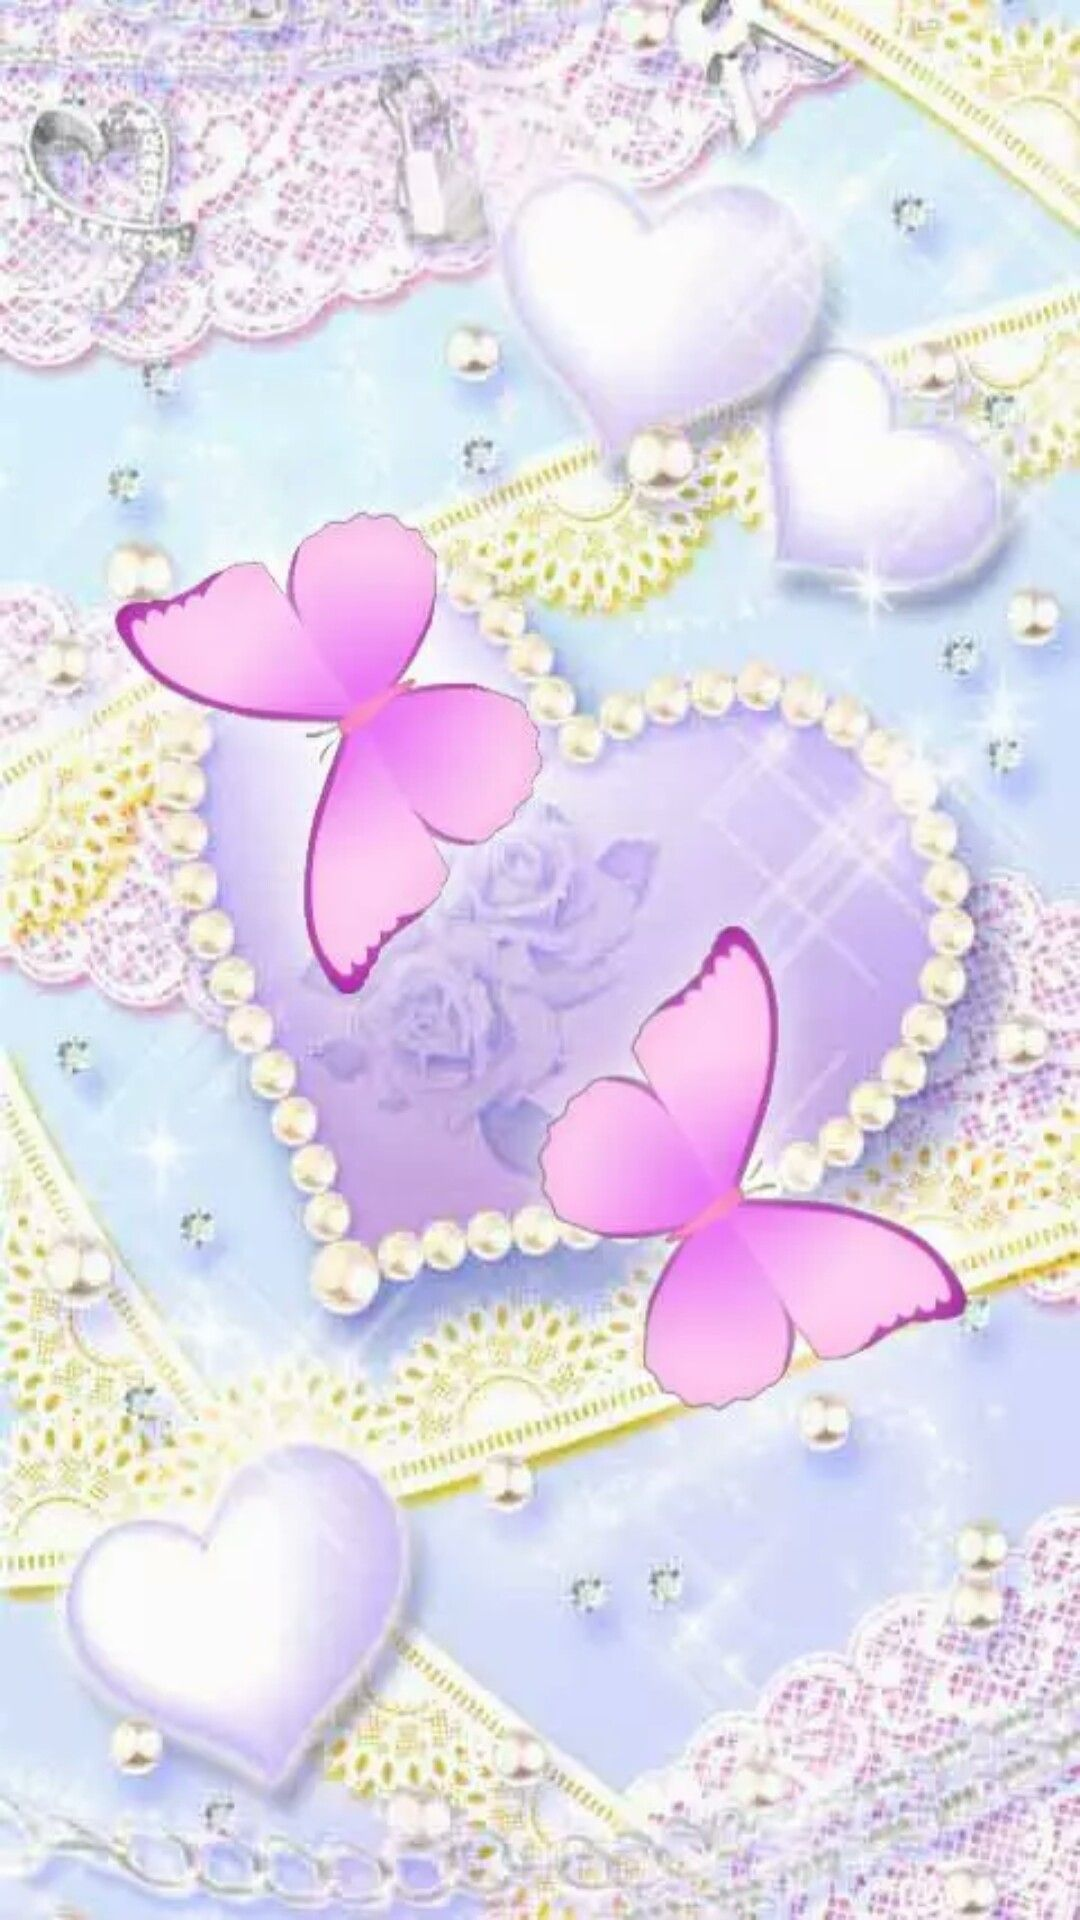 Diamond Girly Wallpaper Android Download diamond girly